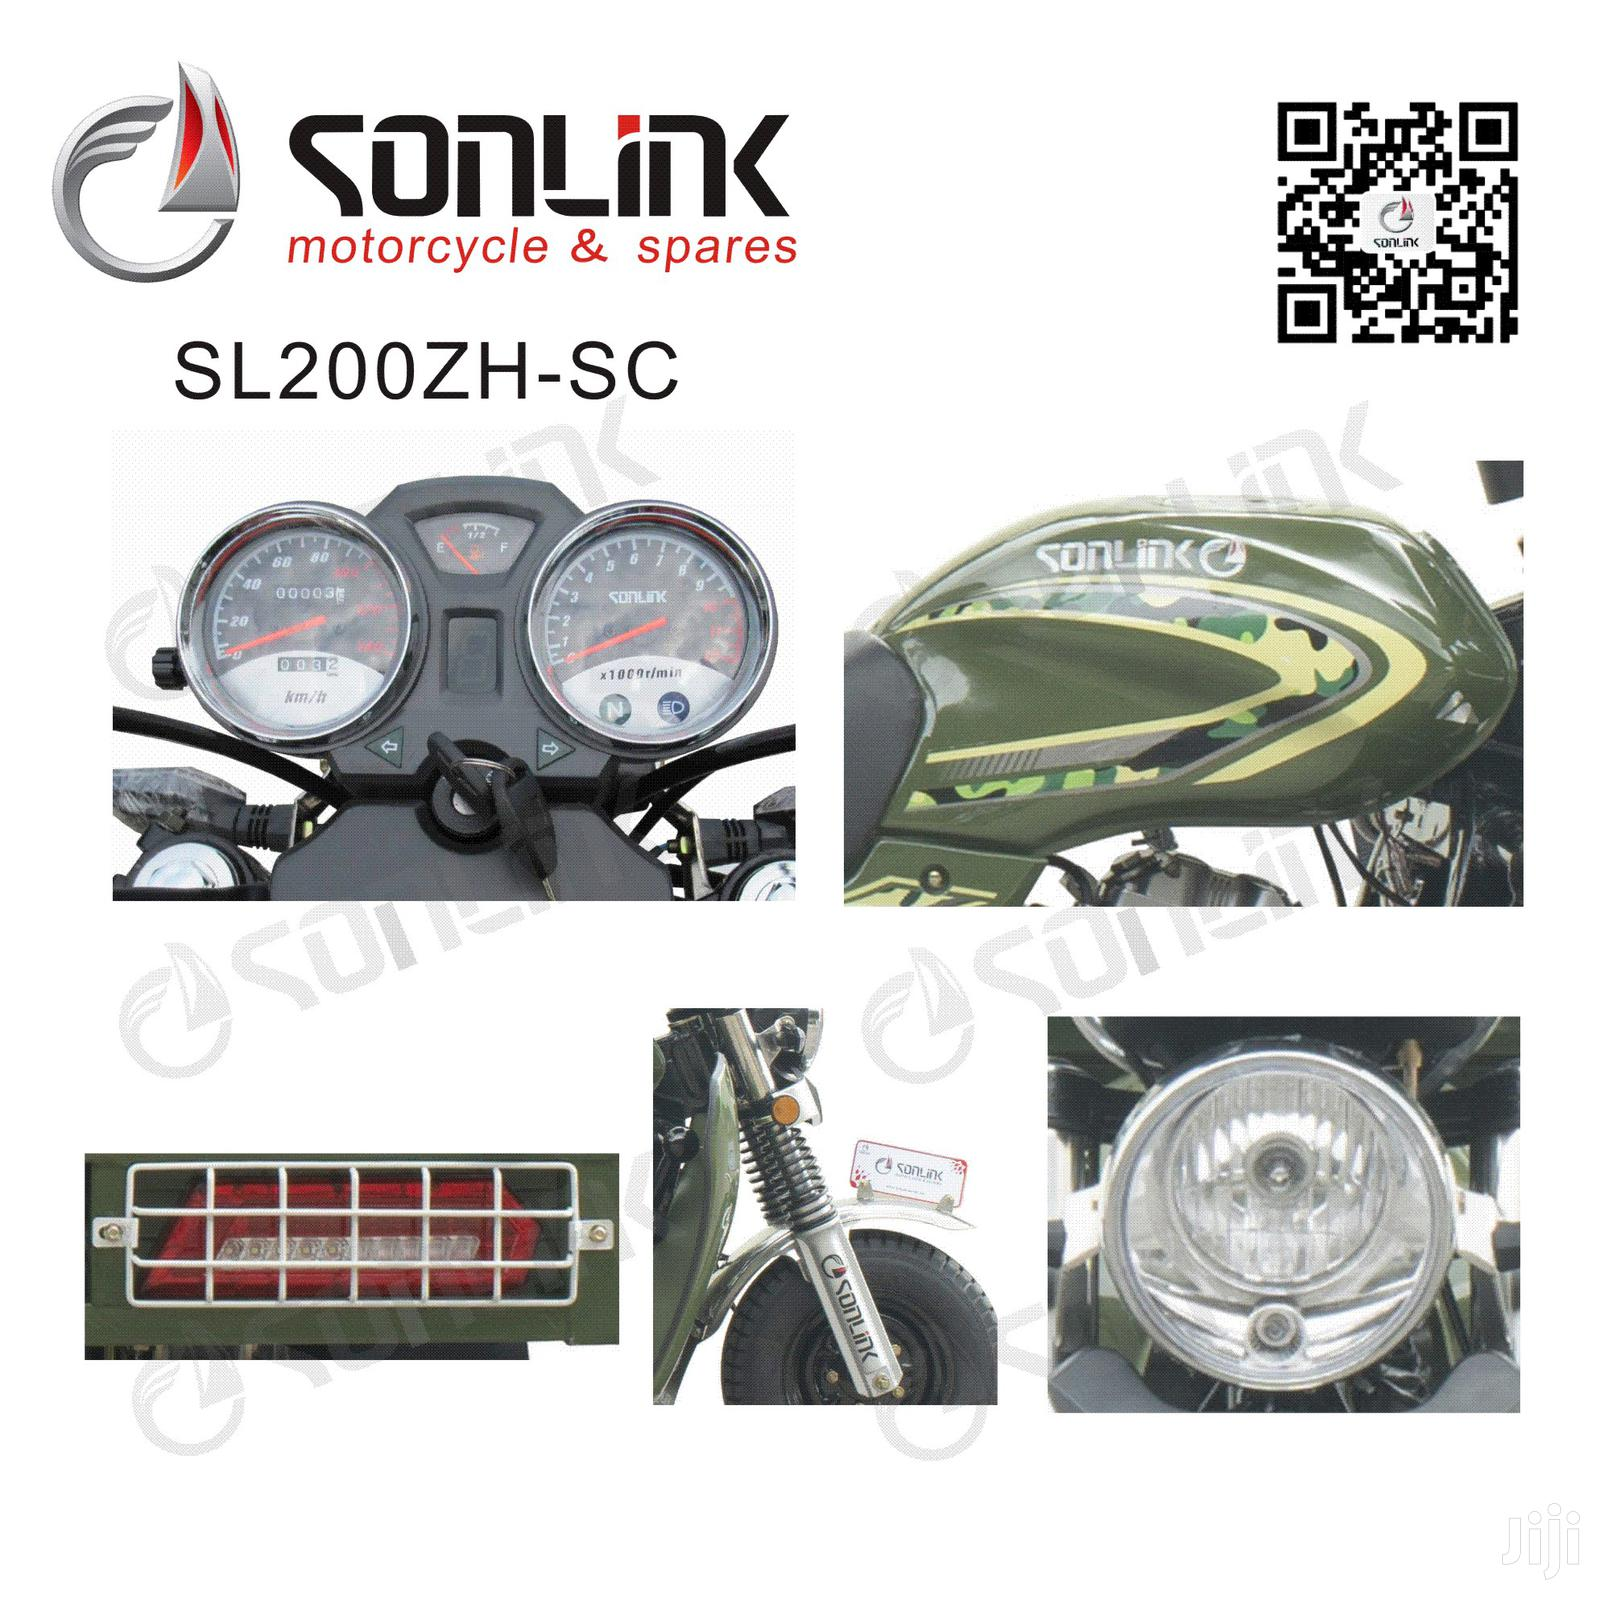 New Sonlink SL200ZH-SC 2019 Green